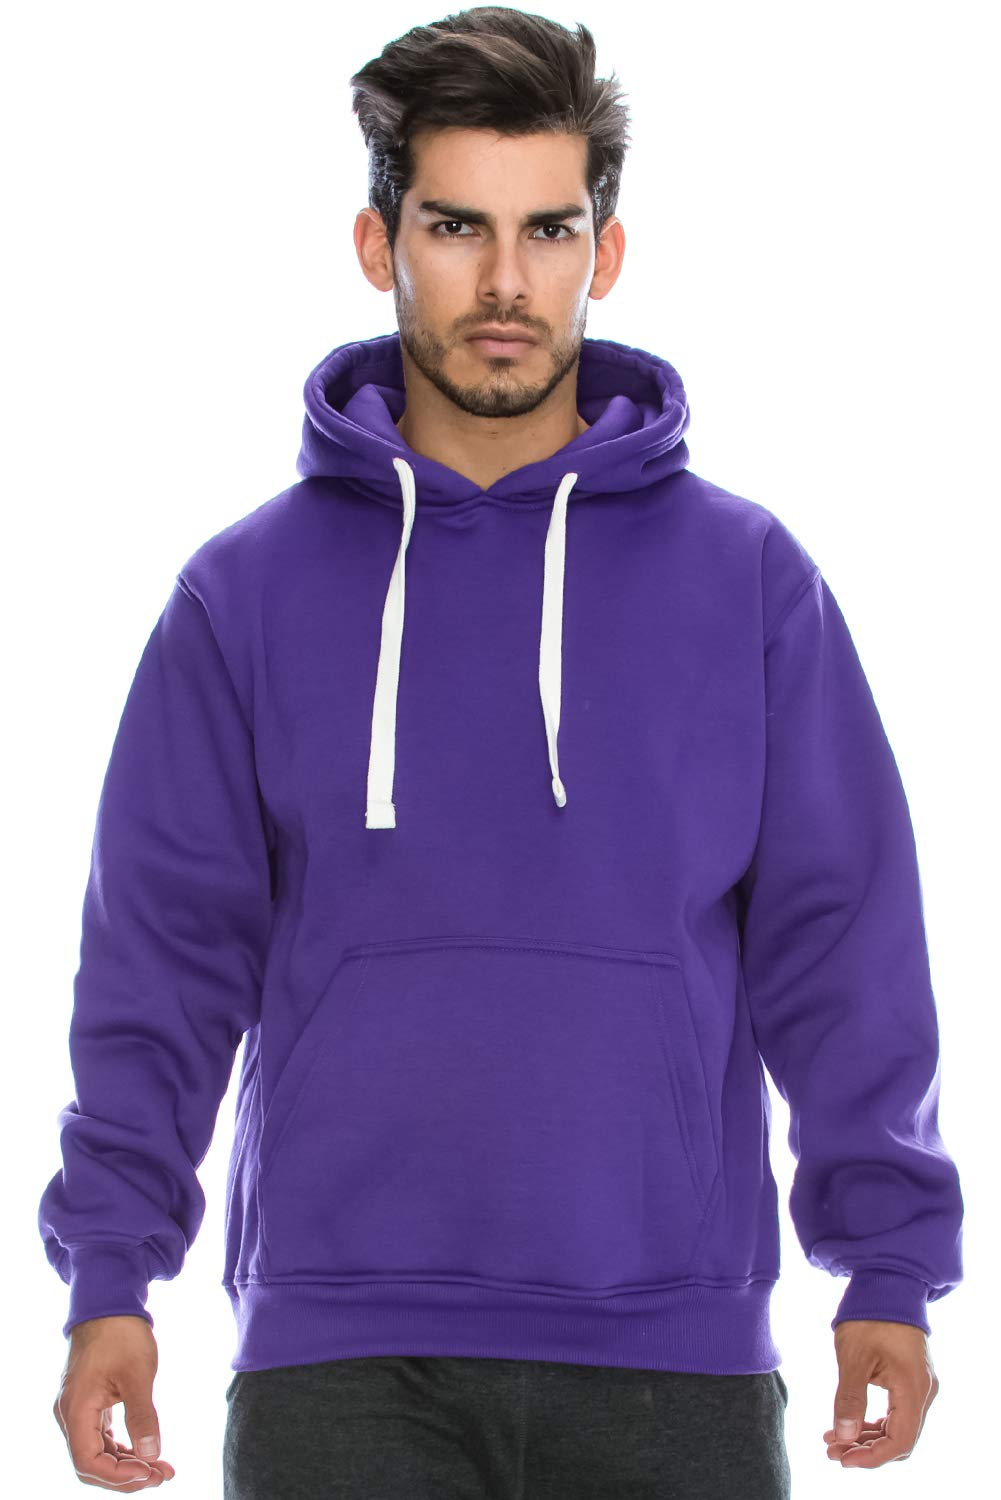 JC DISTRO Plus Size Hipster Hip Hop Basic Heavyweight Pullover Purple Hoodie Jacket 5XL